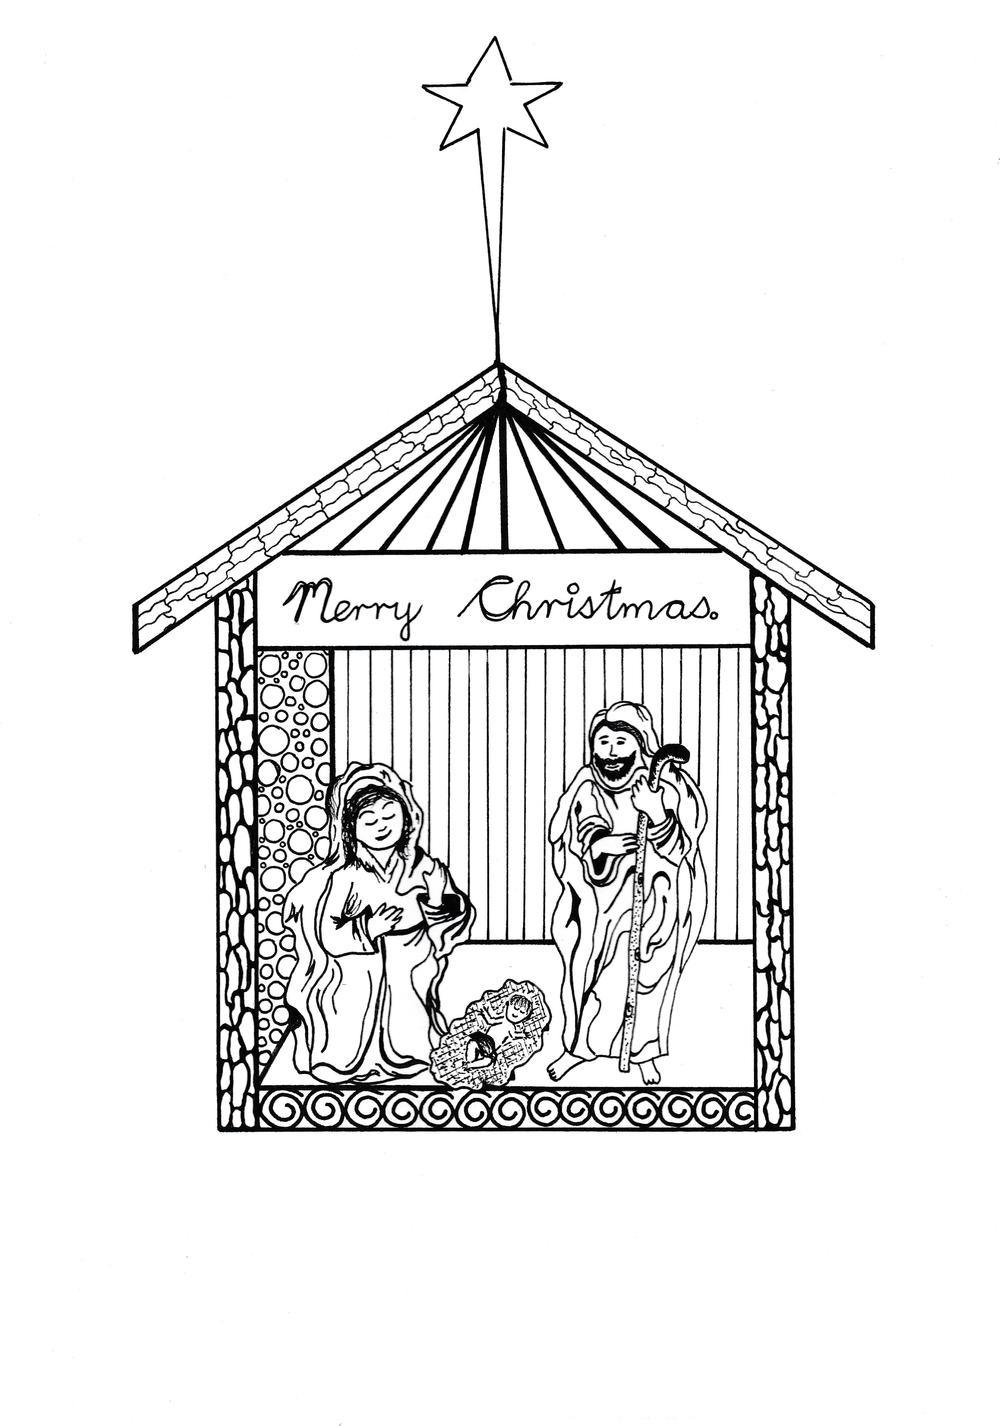 coloring pages of the nativity - free printable nativity scene coloring pages